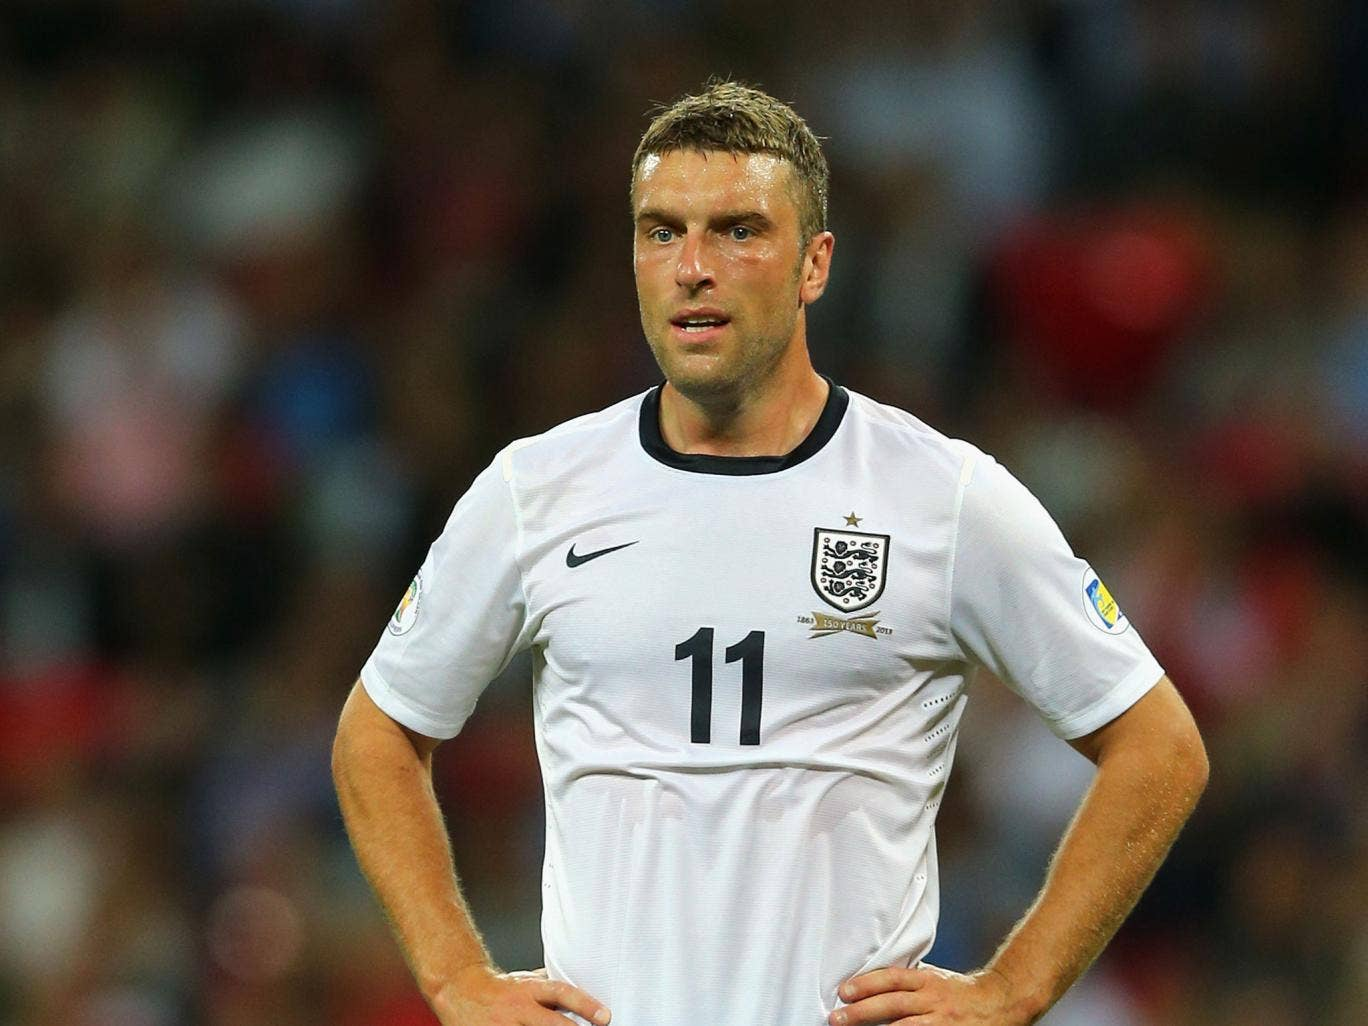 Rickie Lambert has scored in each of his two England games